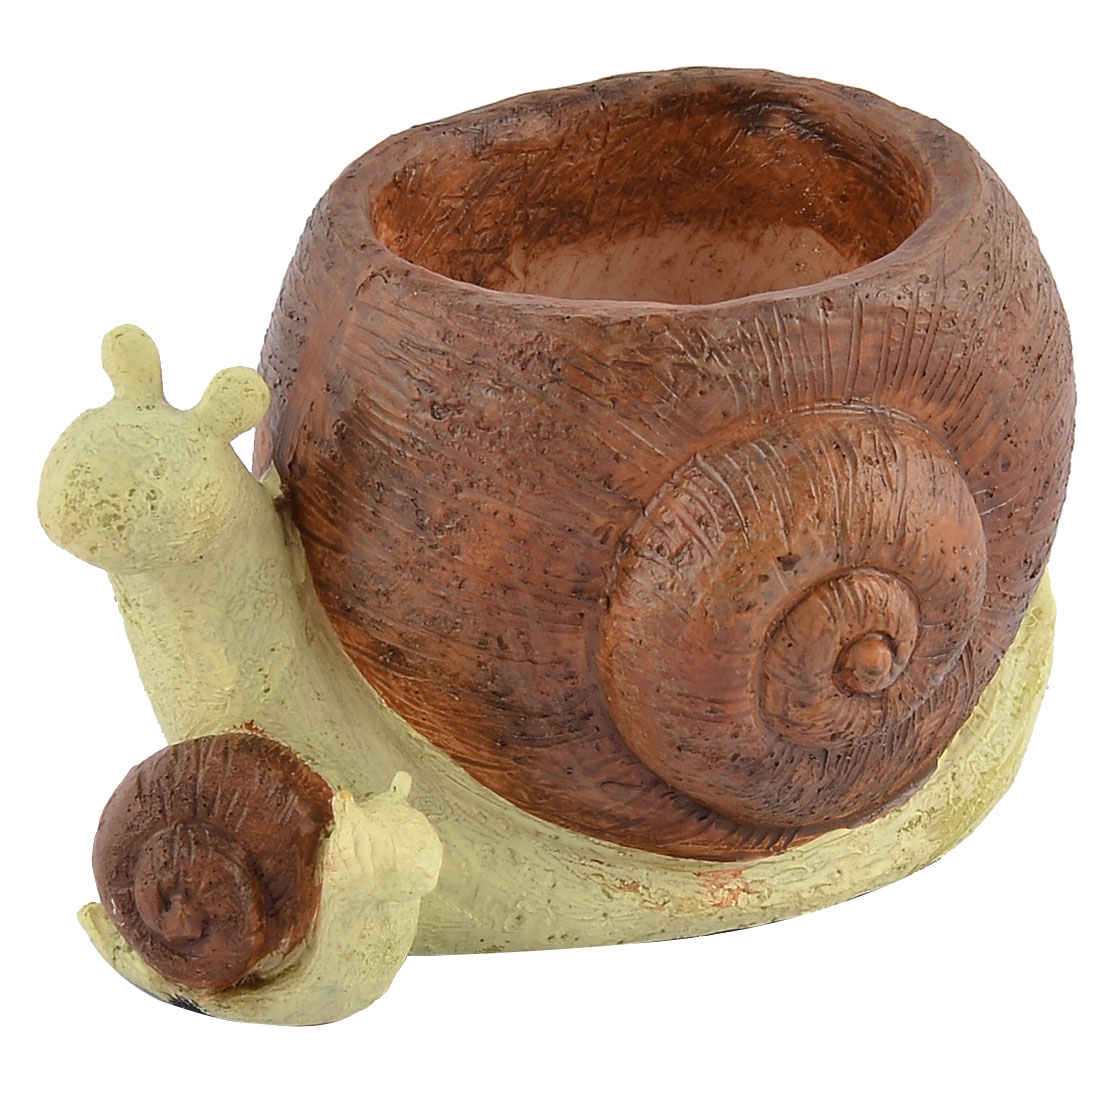 Home Garden Office Resin Snail Shaped Aloes Cactus Plant Flower Pot Brown Beige